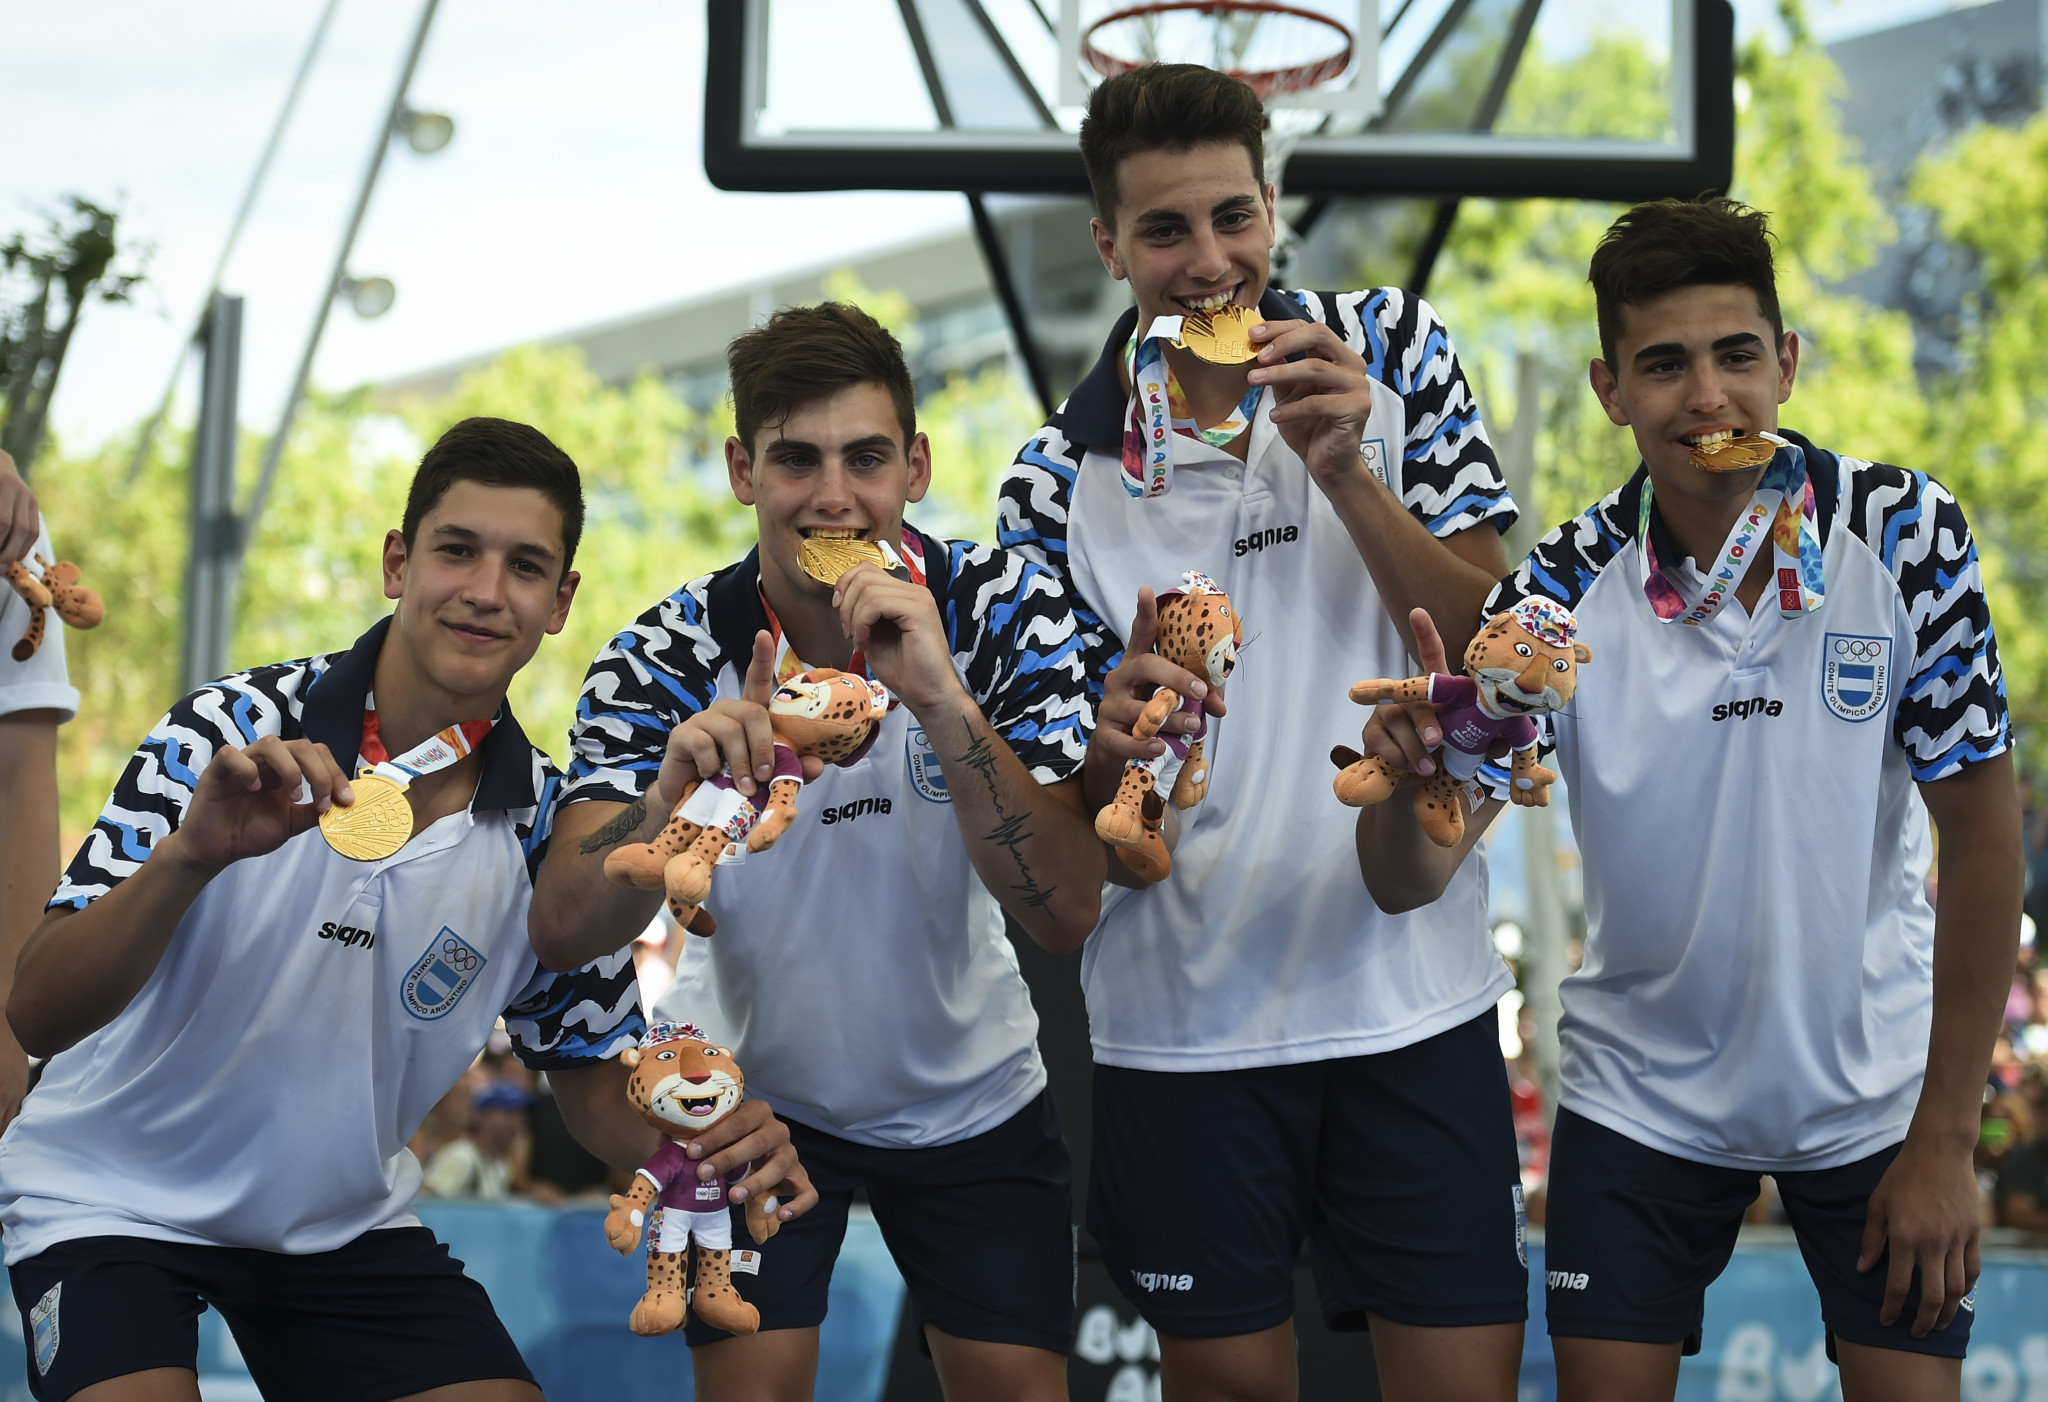 Argentina crowned men's 3x3 basketball champions on penultimate day at Buenos Aires 2018